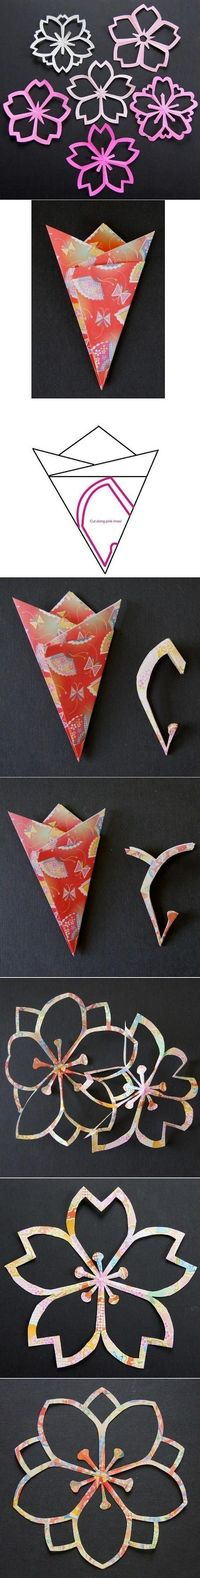 flower paper, paper flowers and diy crafts.